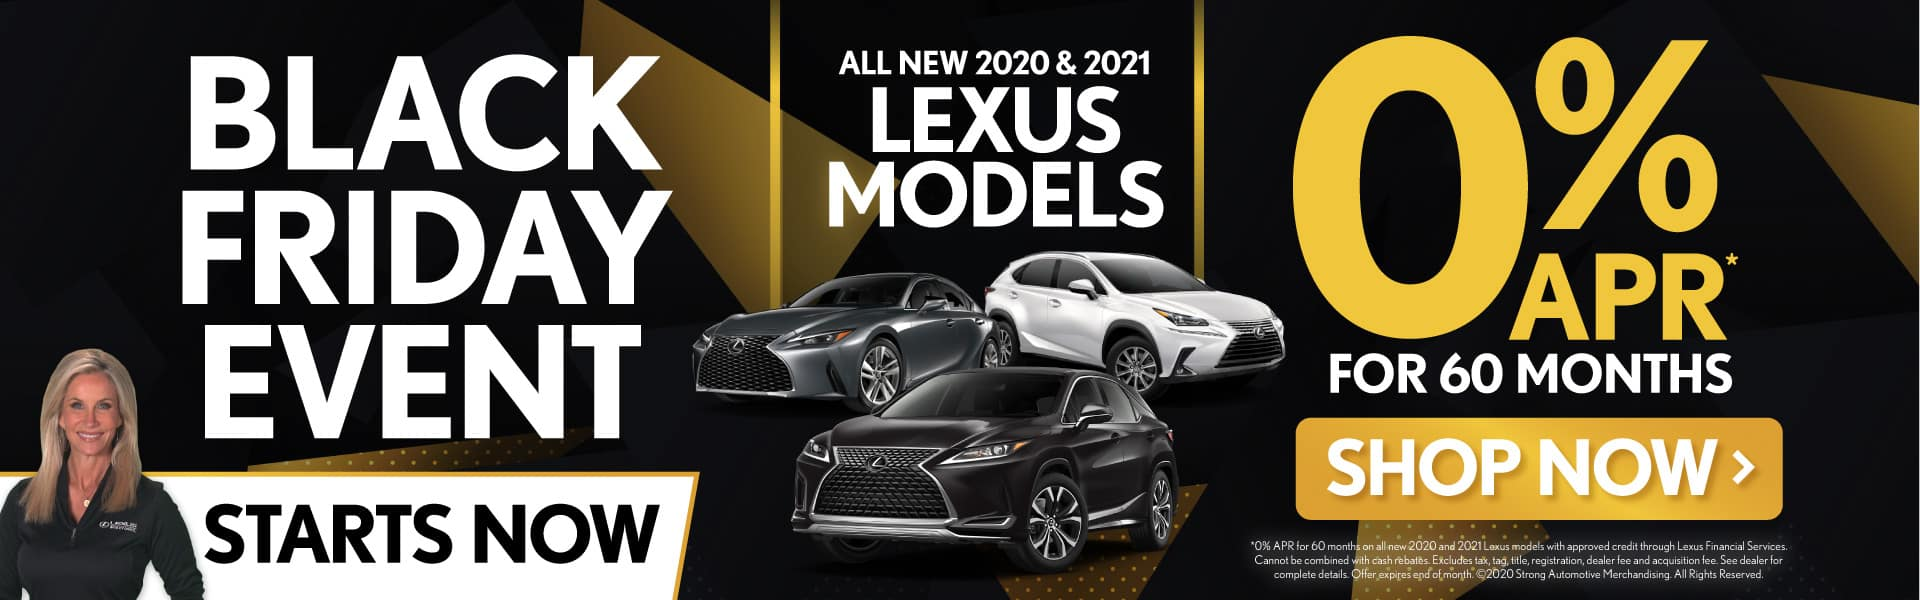 All New 2020 & 2021 Lexus Models 0% APR for 60 Months - SHOP NOW